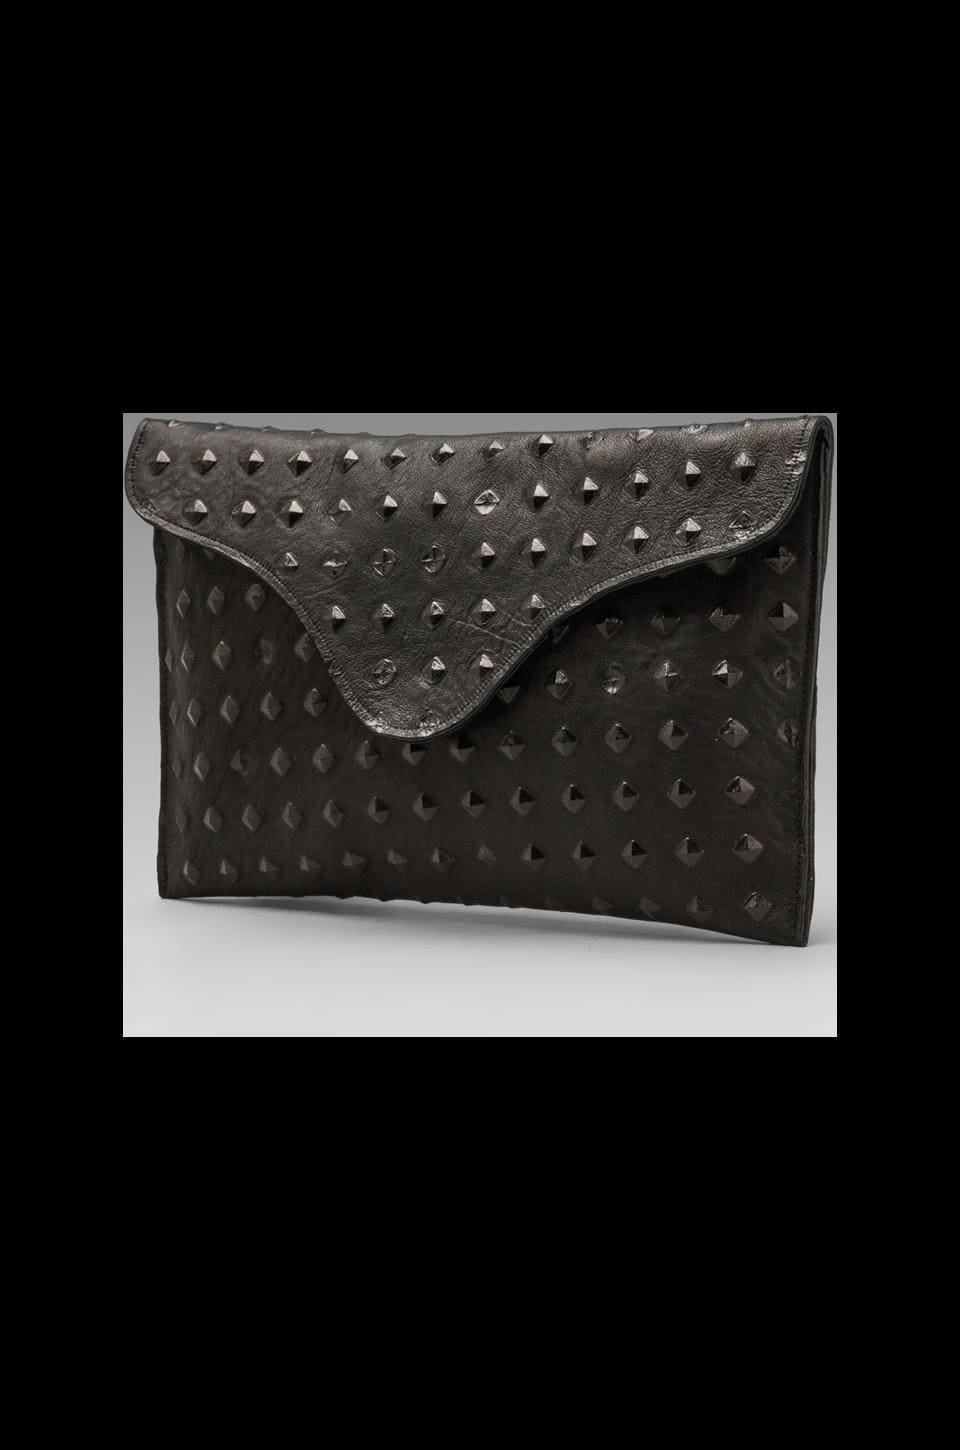 JJ Winters Envelope Clutch in Black Pyramid